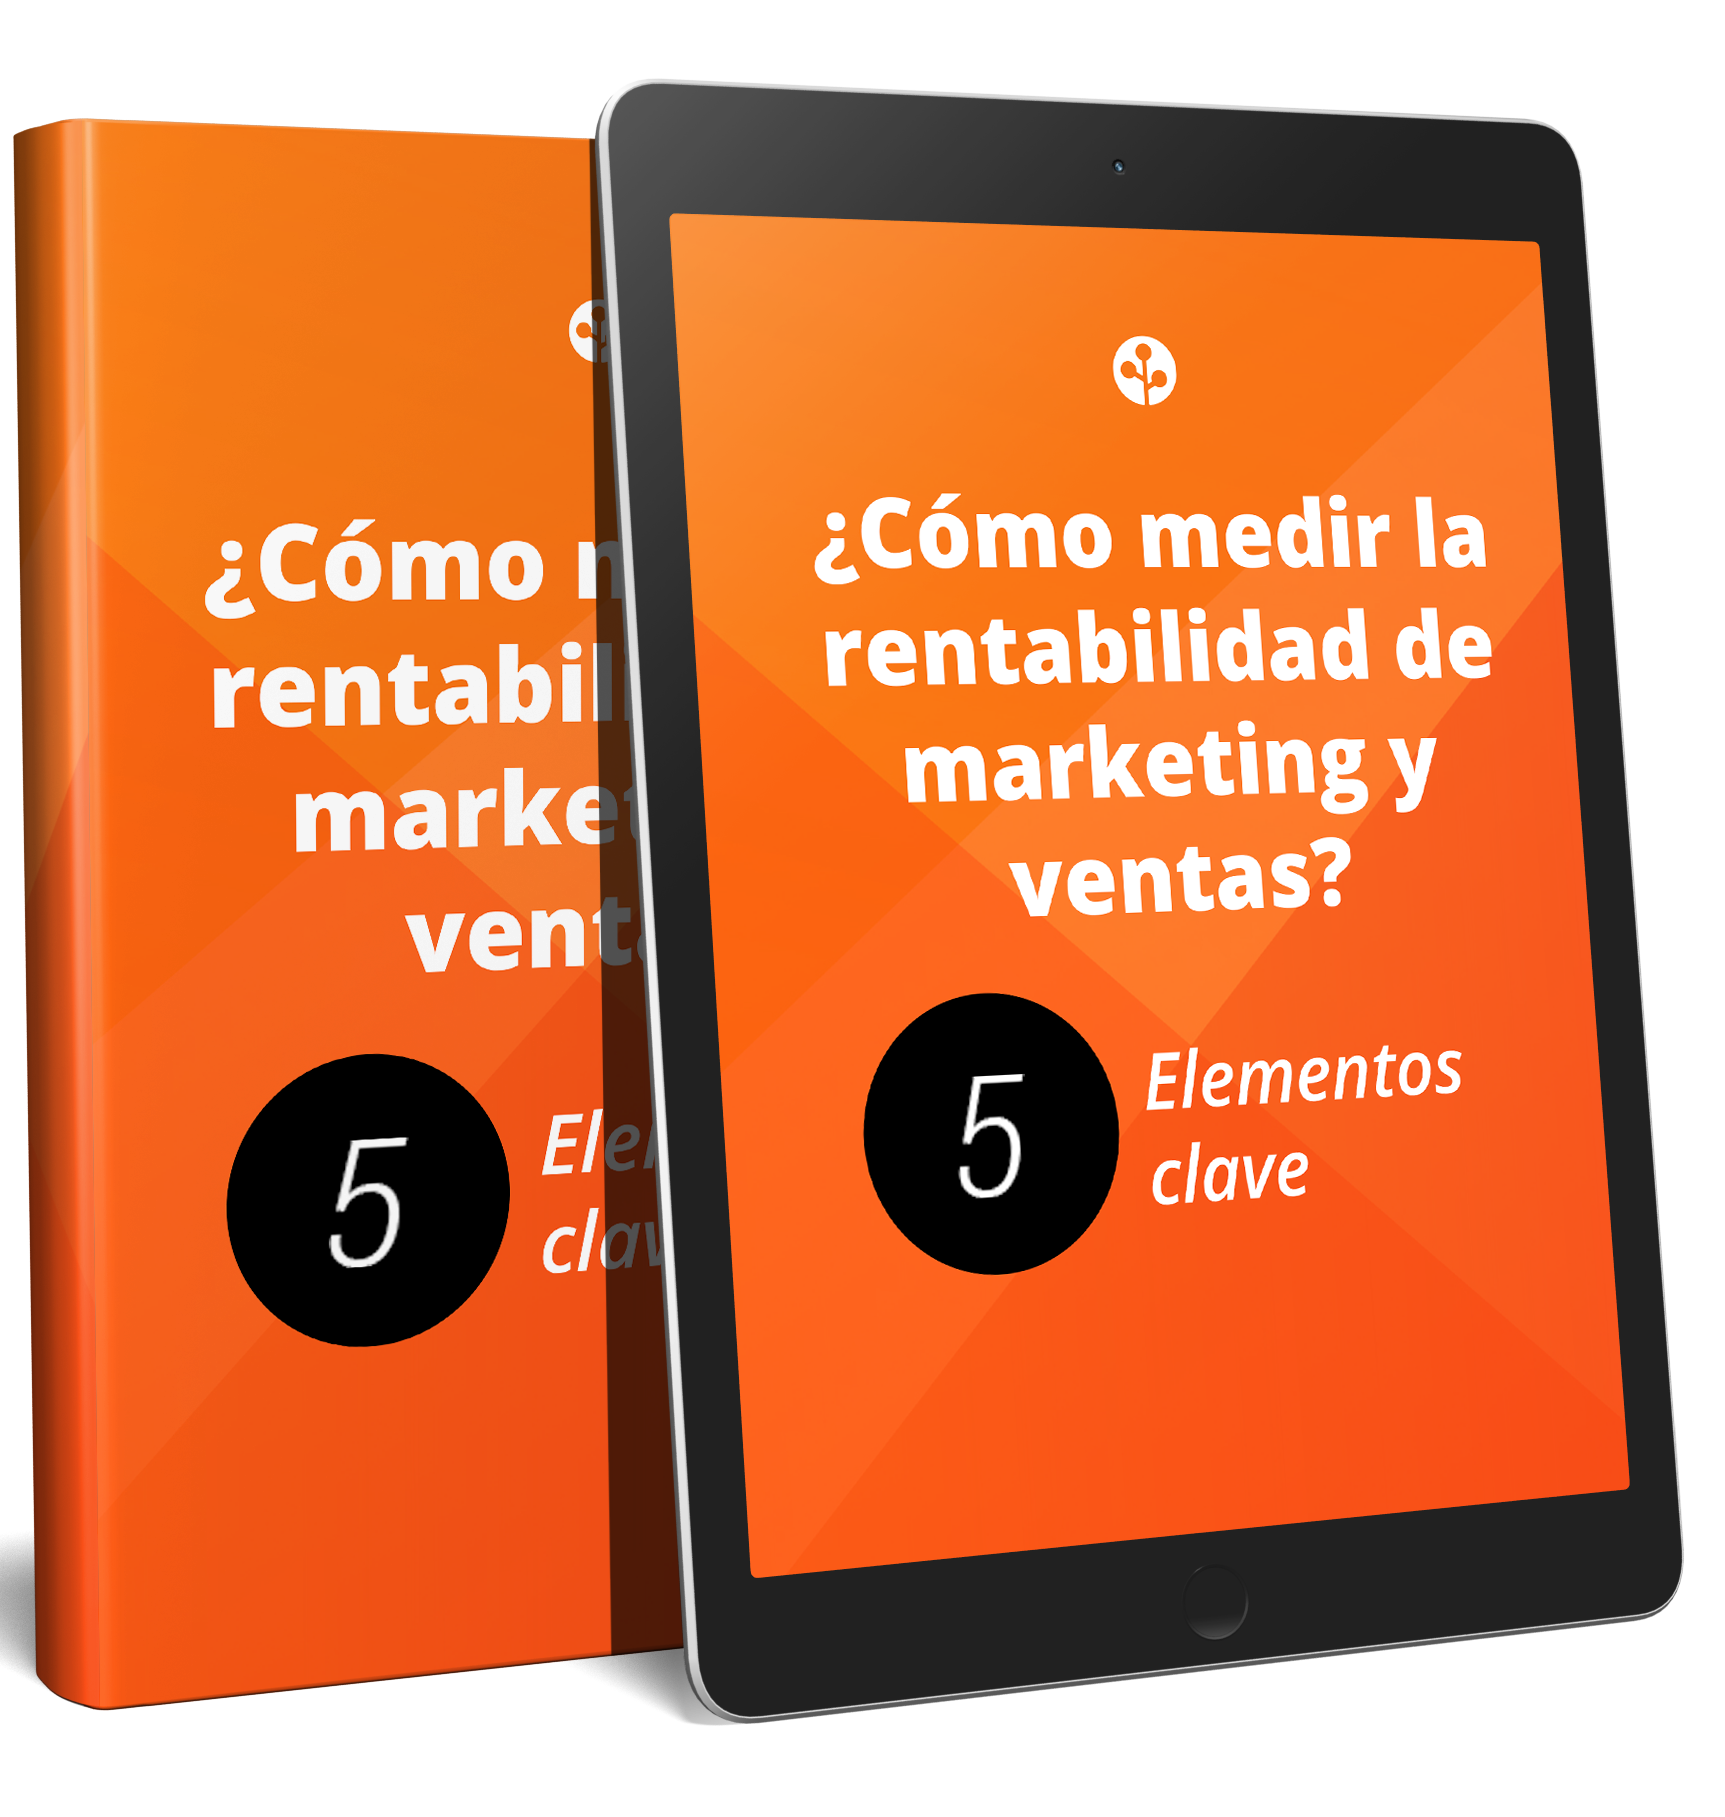 guia para medir la rentabilidad de marketing y ventas